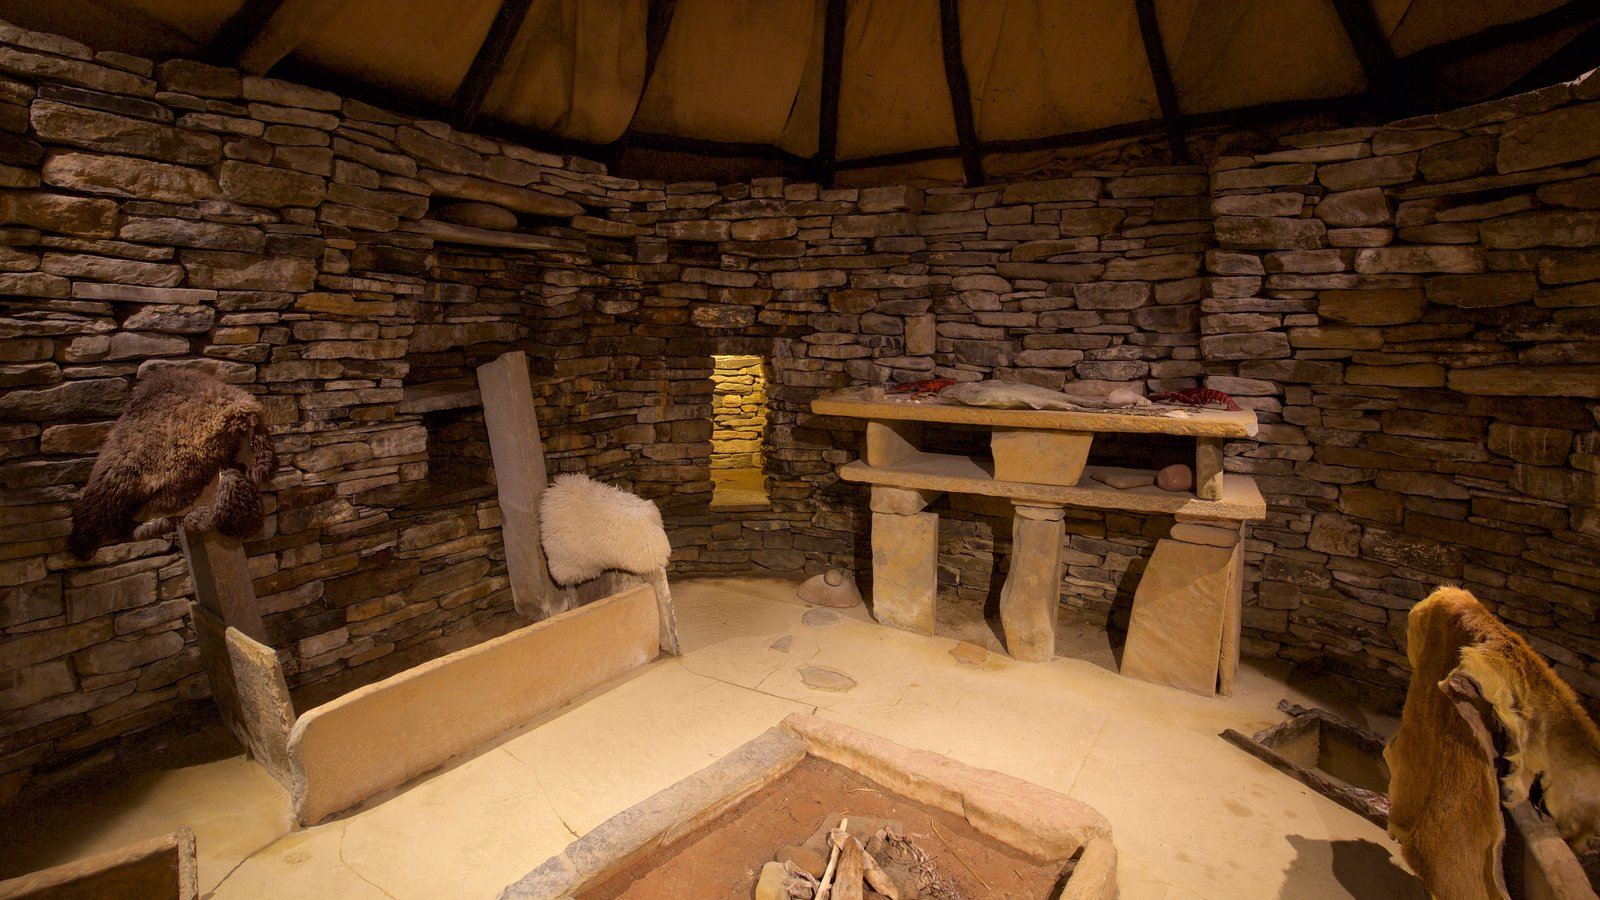 Skara Brae which includes heritage elements, a house and interior views